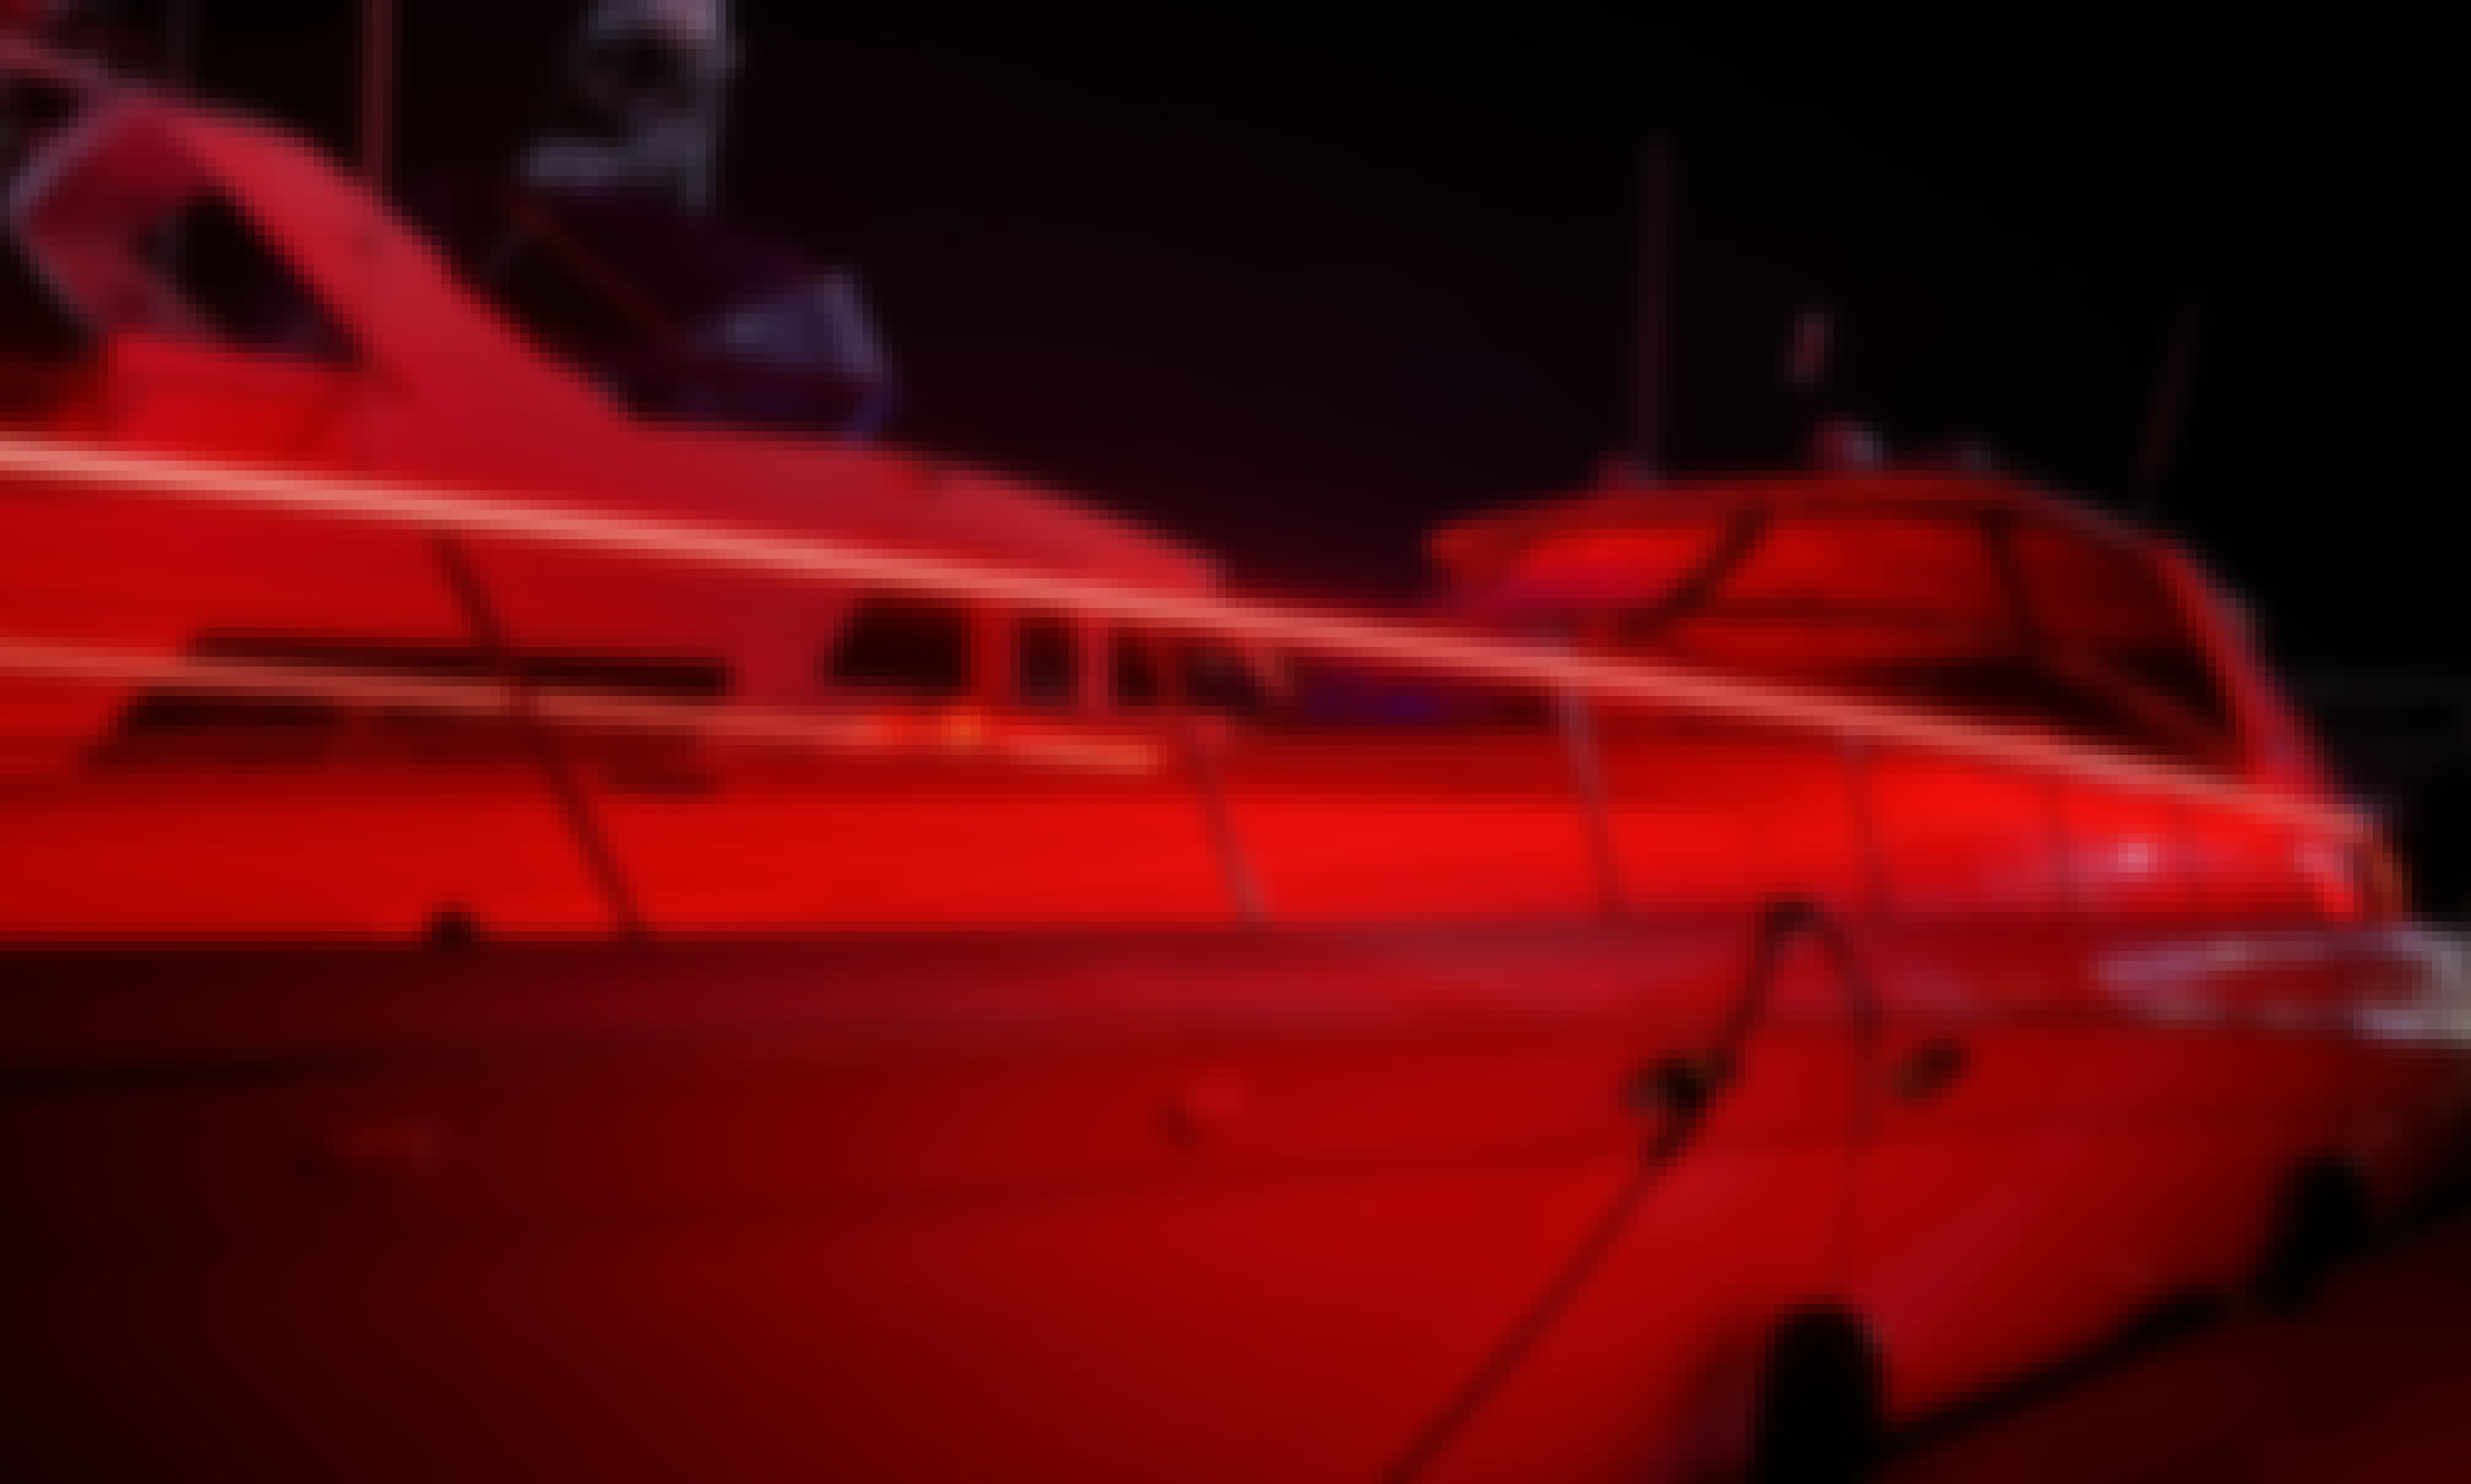 Christmas Ships Express Cruiser Yacht! Your Holidays & Corporate Charter! Heaters, Lights, Music, More!